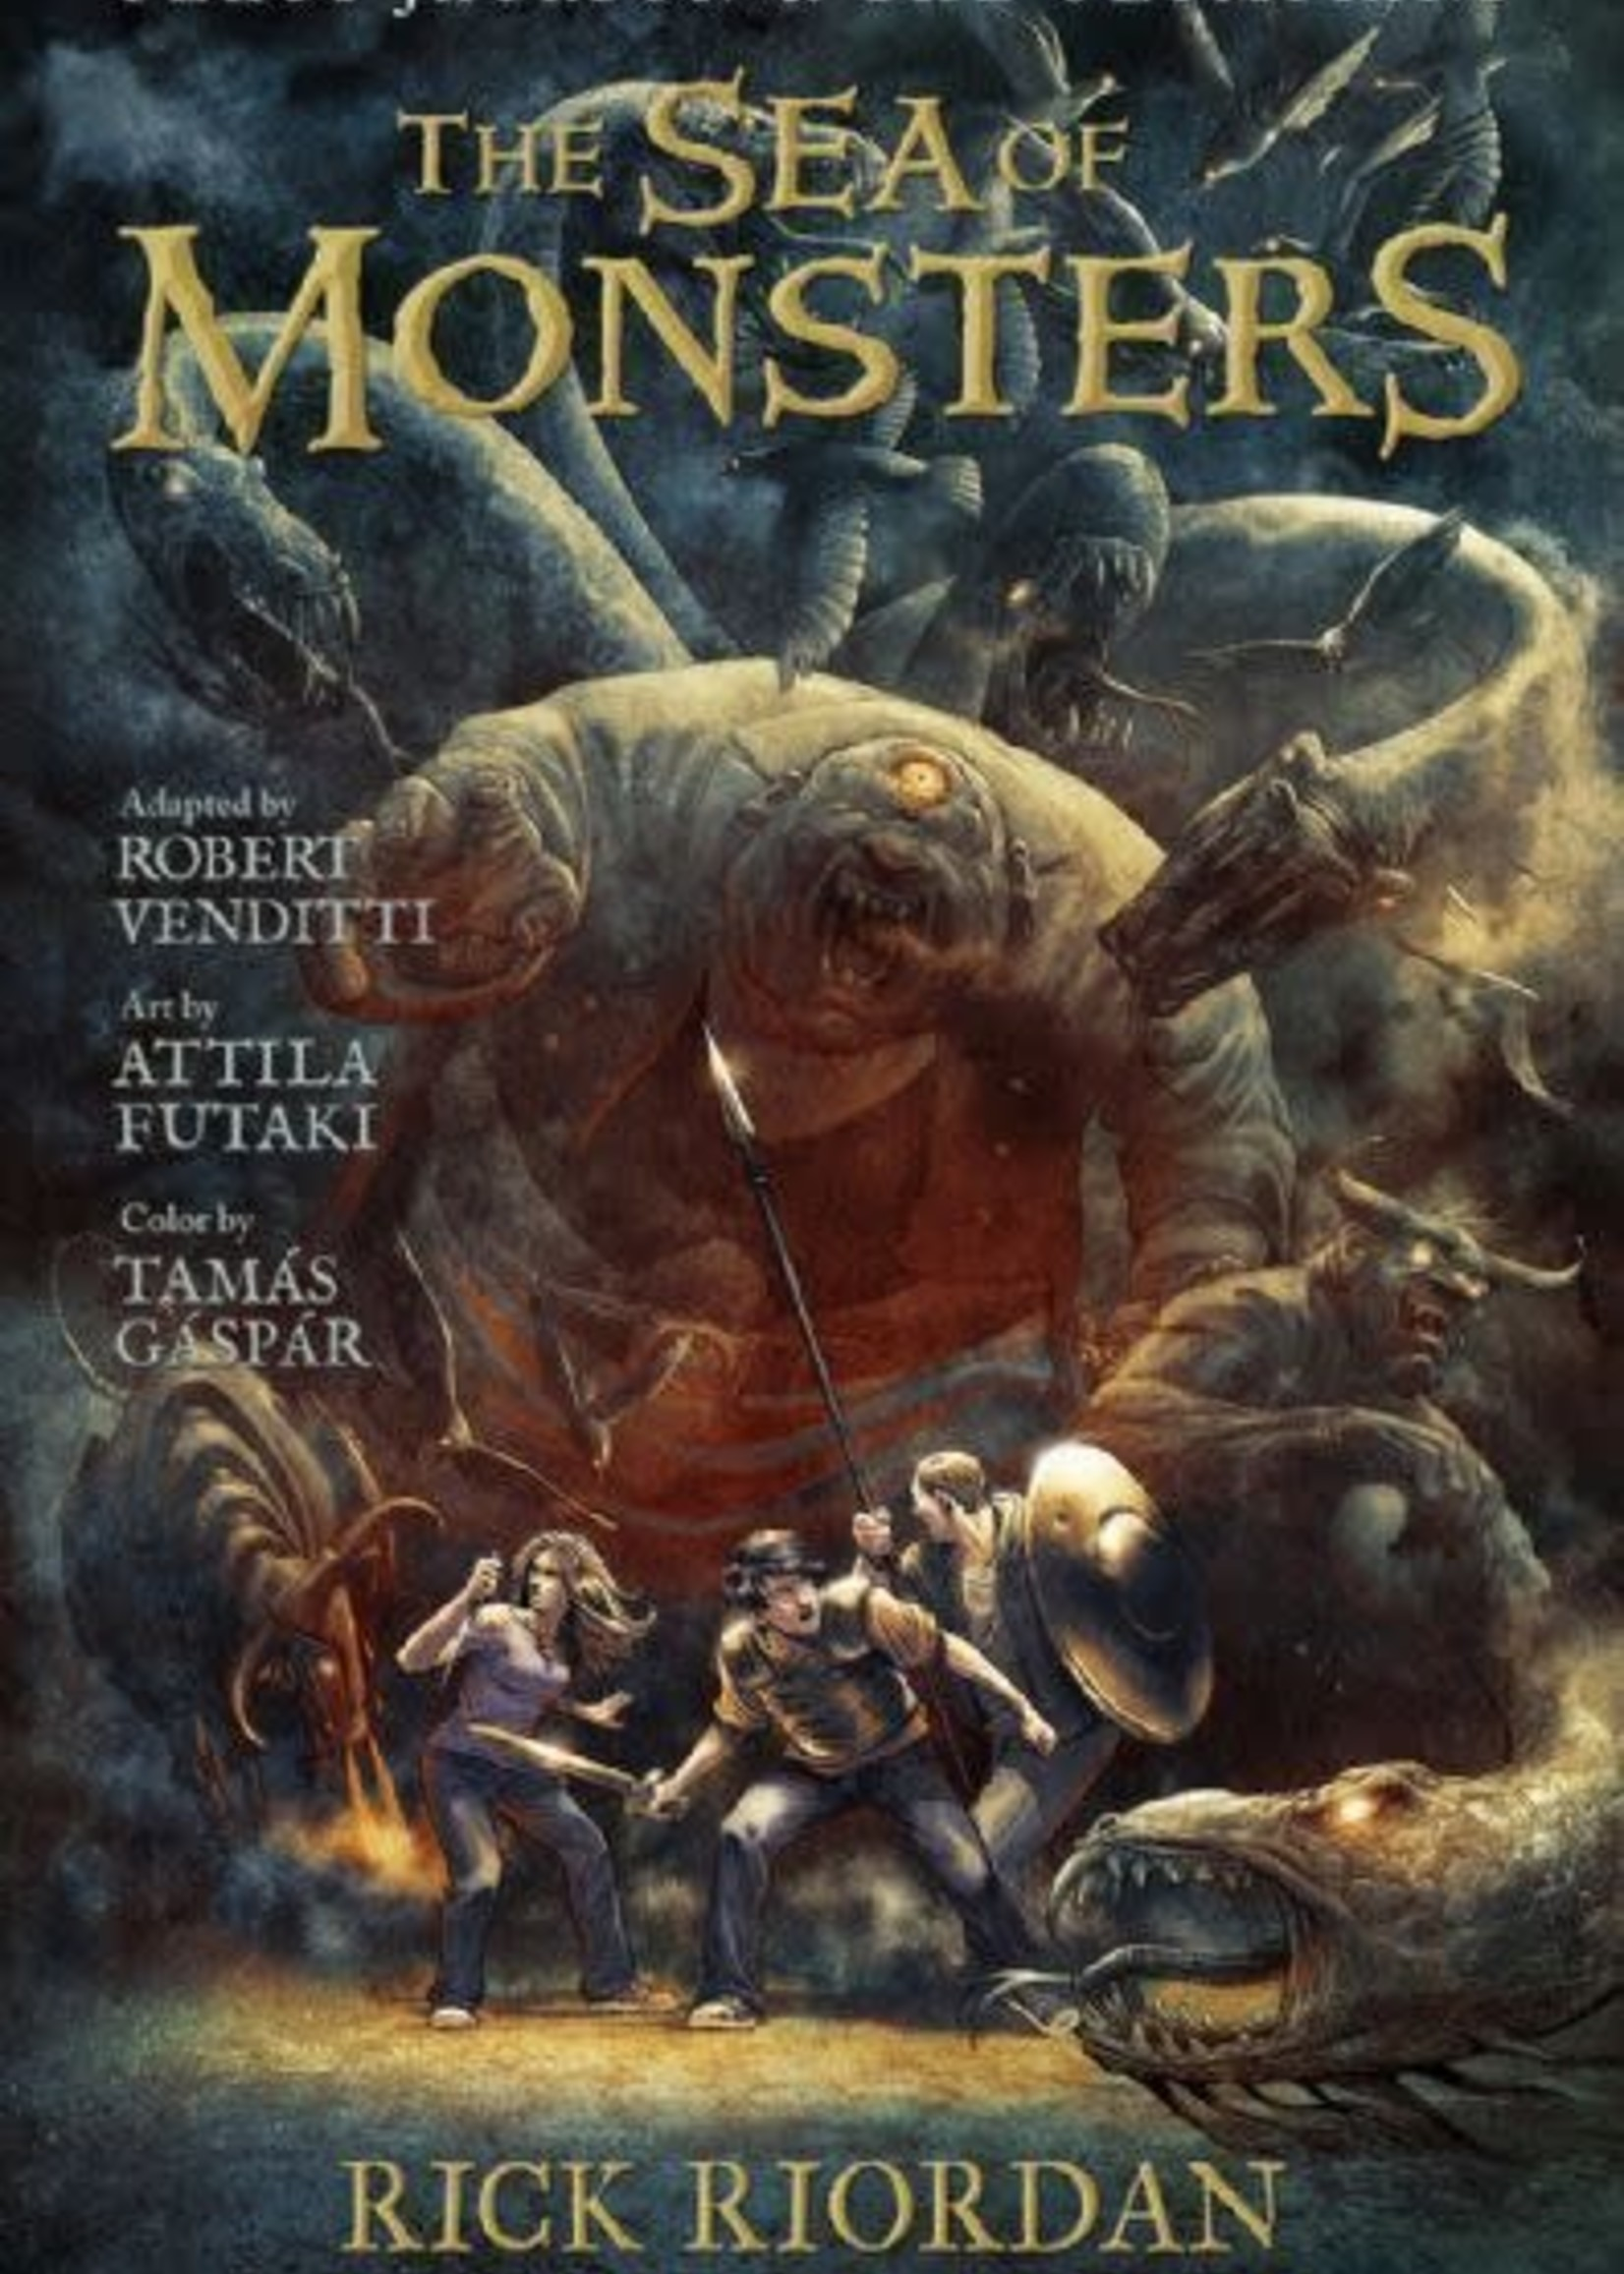 Percy Jackson and the Olympians #02, The Sea of Monsters Graphic Novel - Paperback